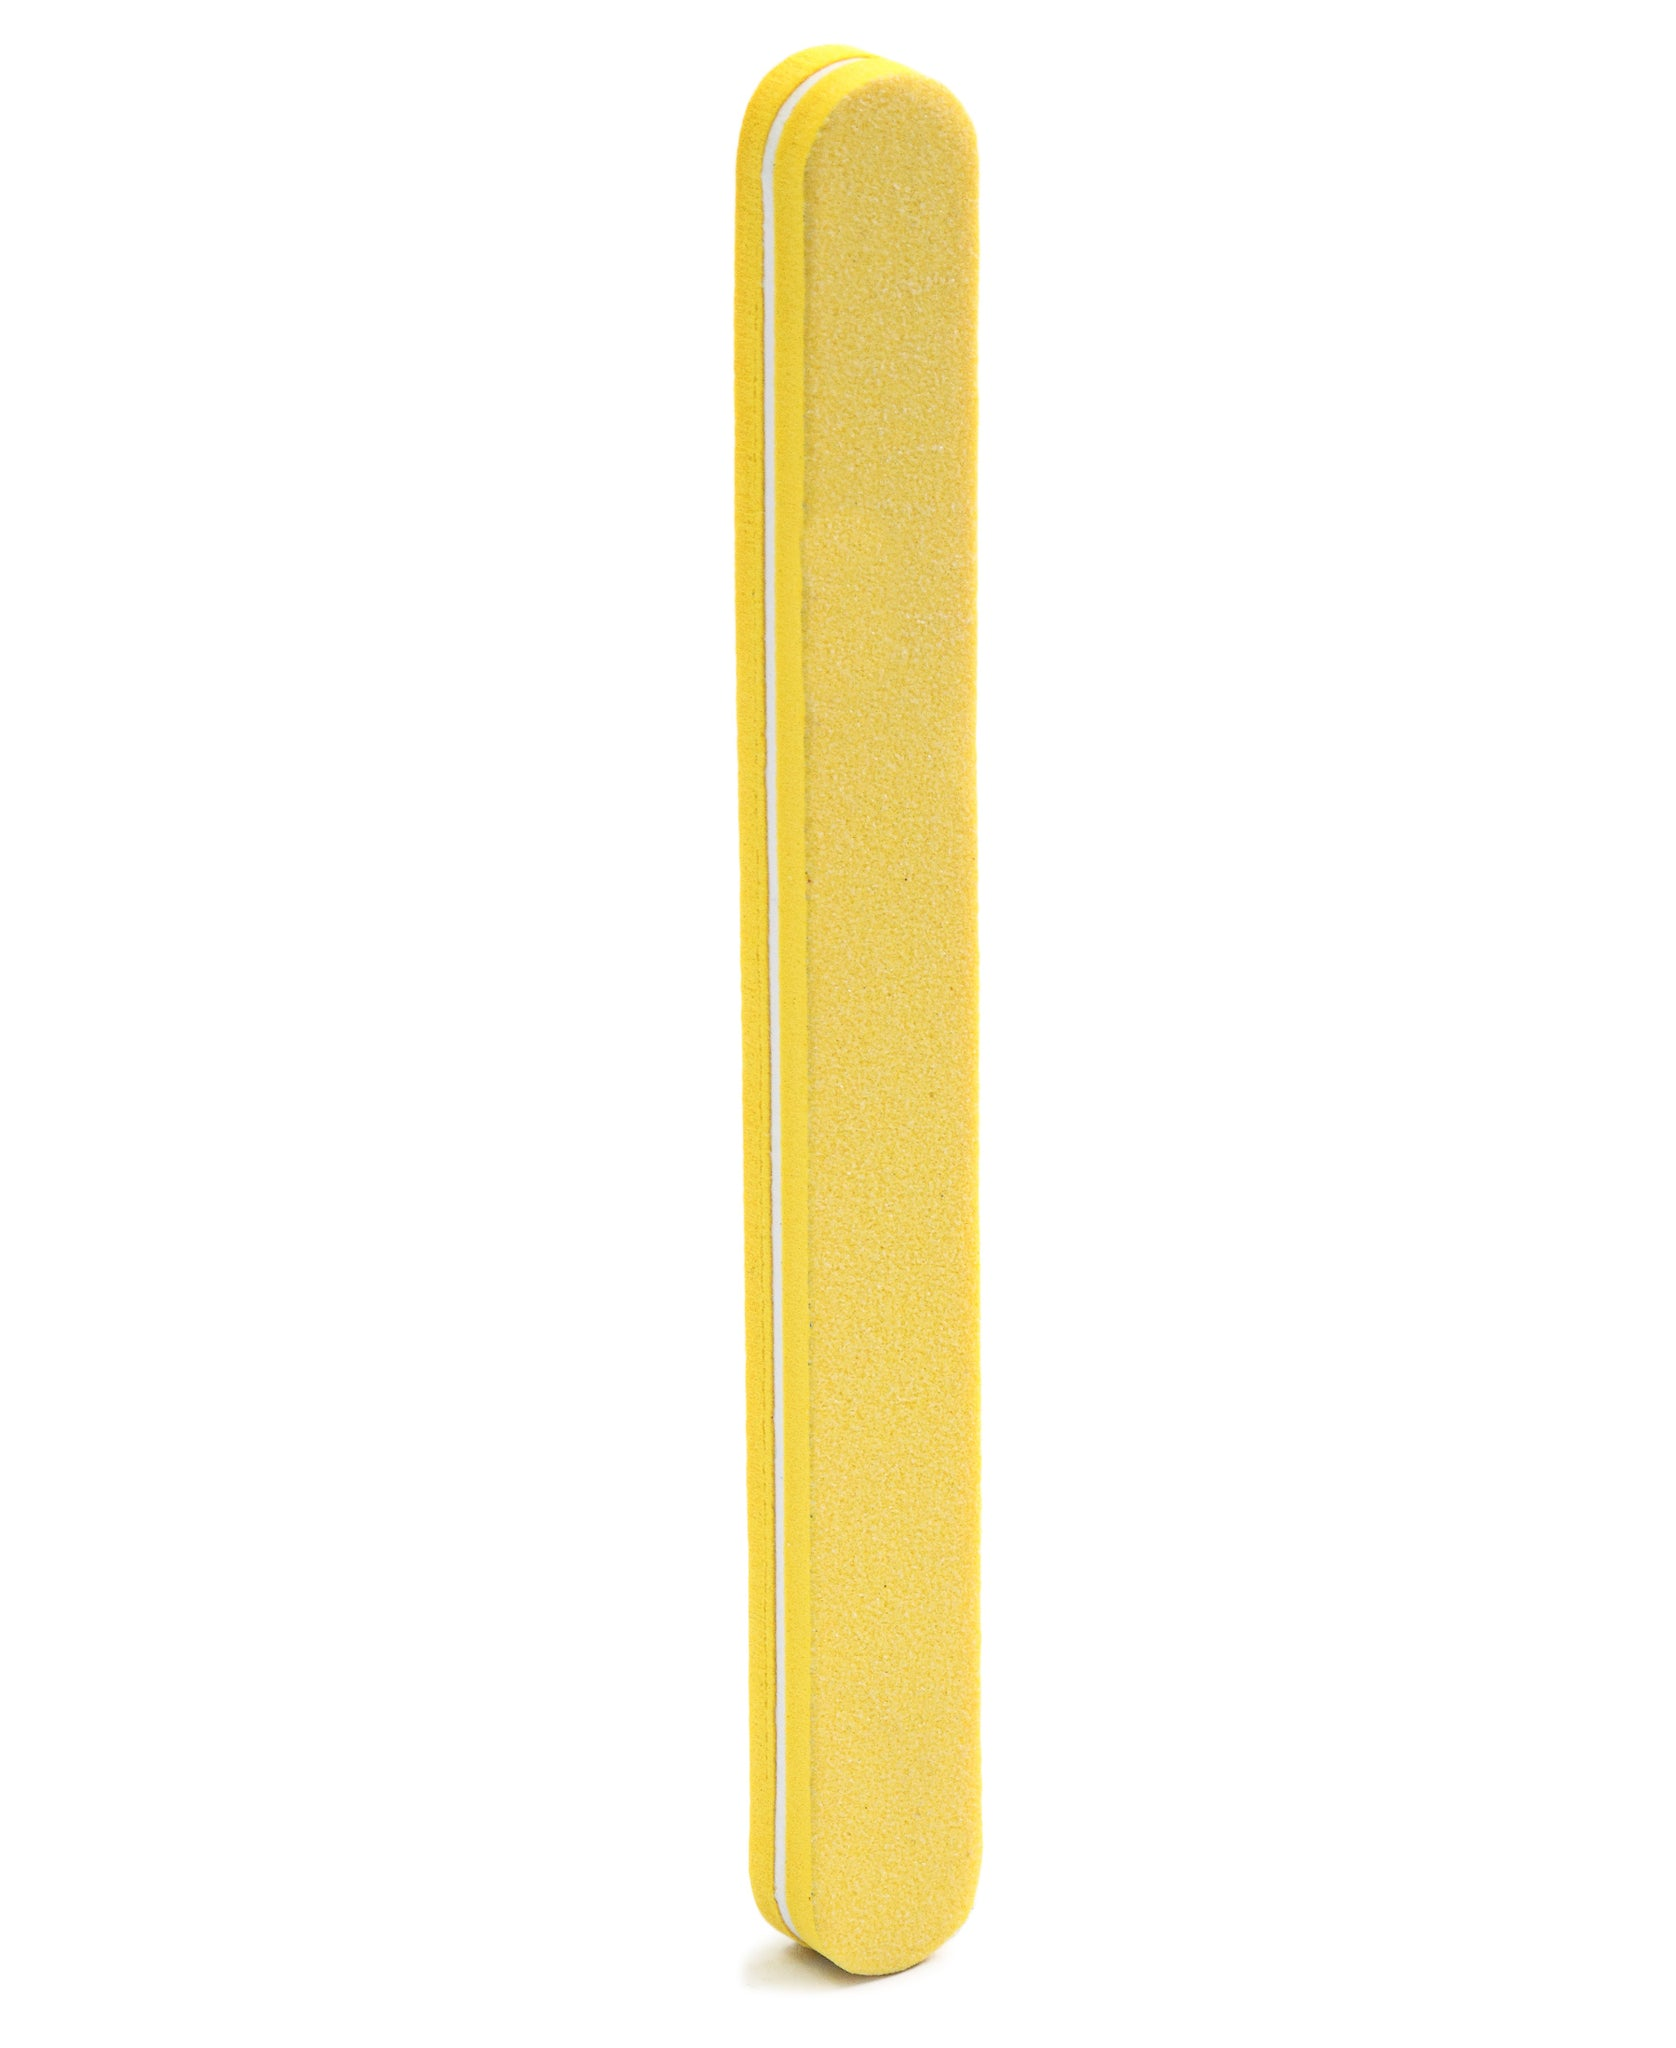 Flexible Sponge Nail Buffer - Yellow